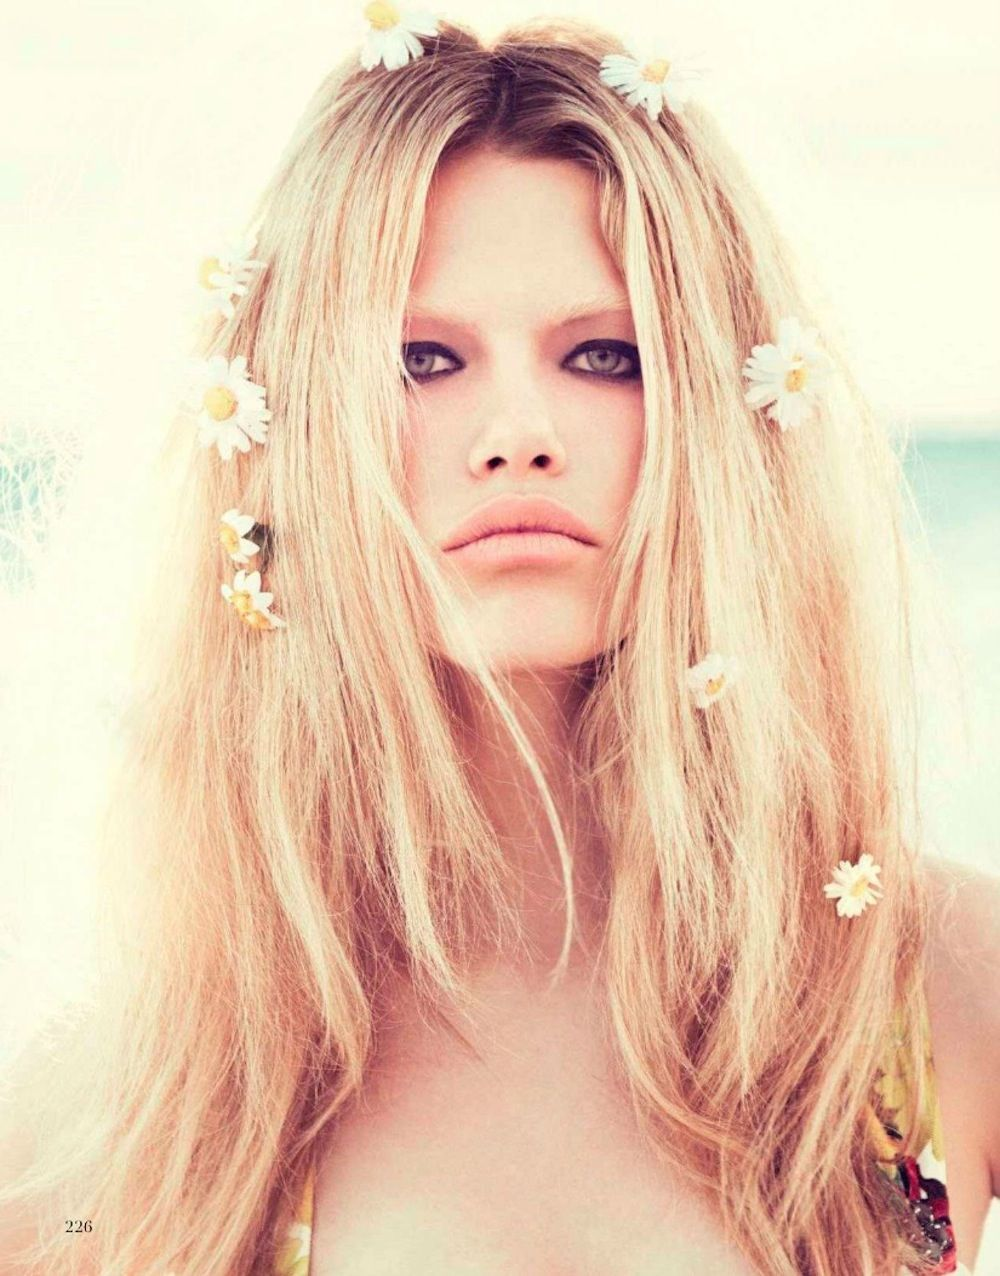 Paola Kudacki for Vogue Spain May 2012. Too strange, no one would believe this face.